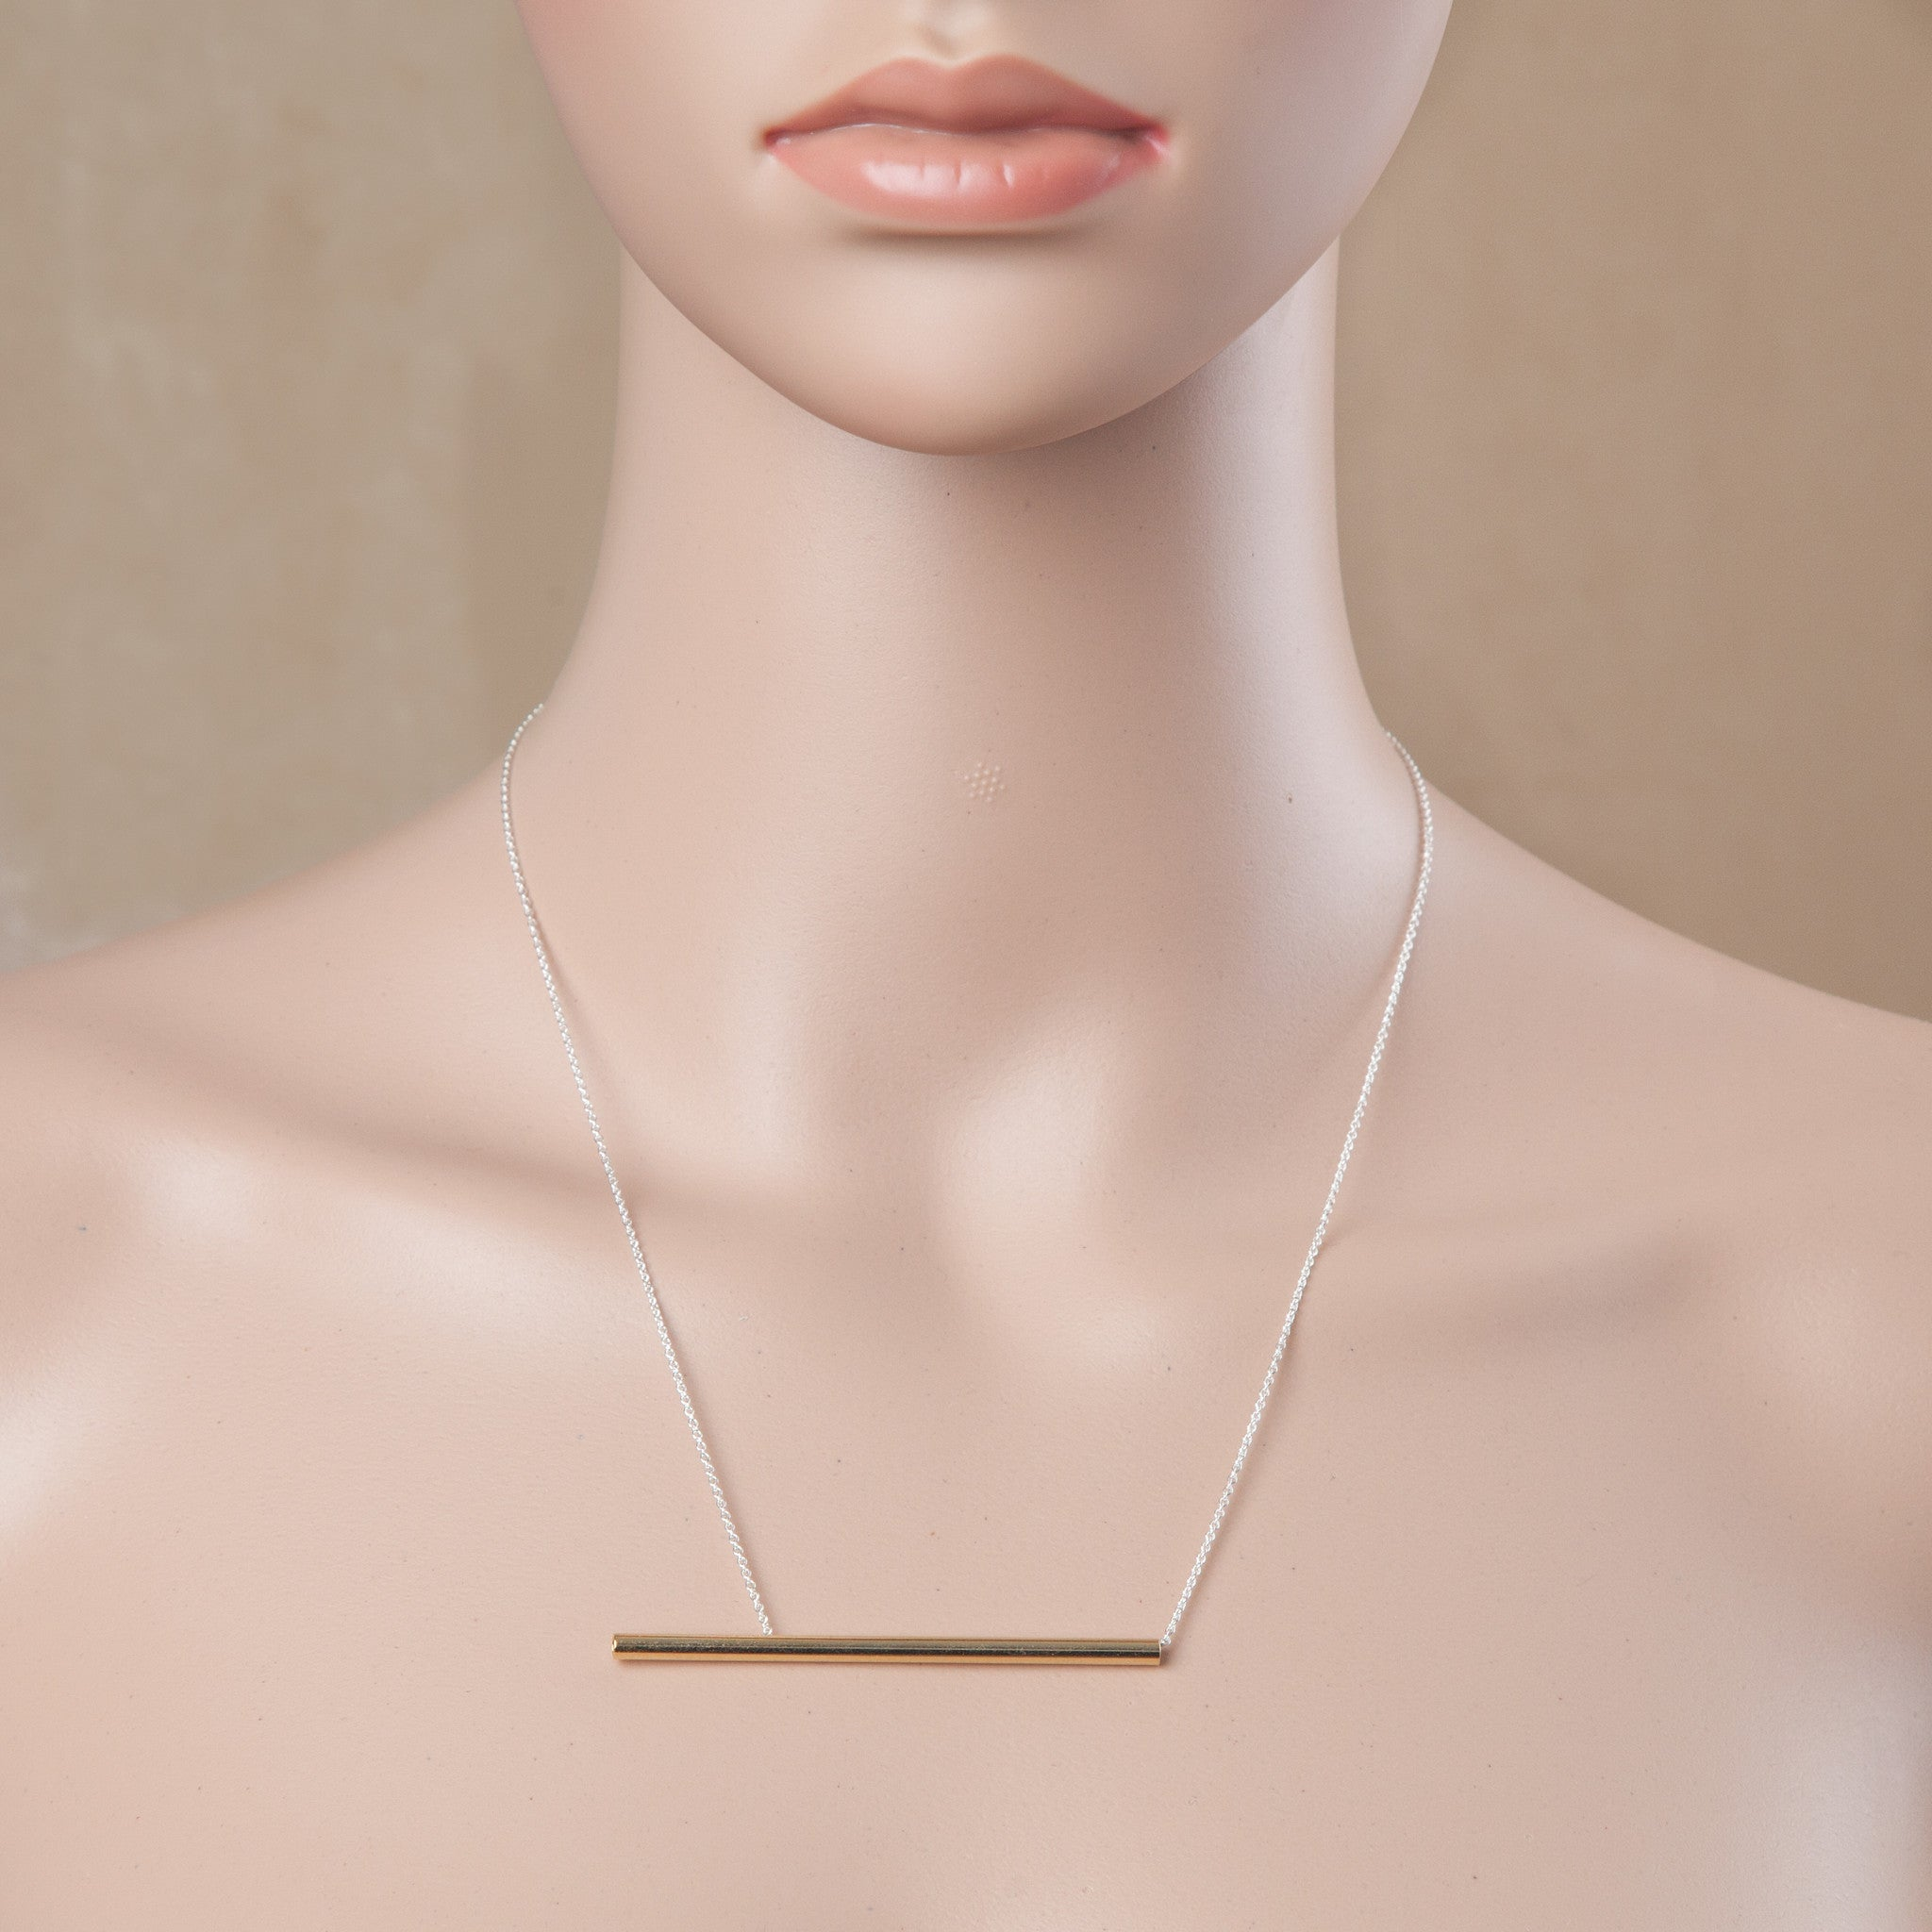 POCKY NECKLACE GOLD